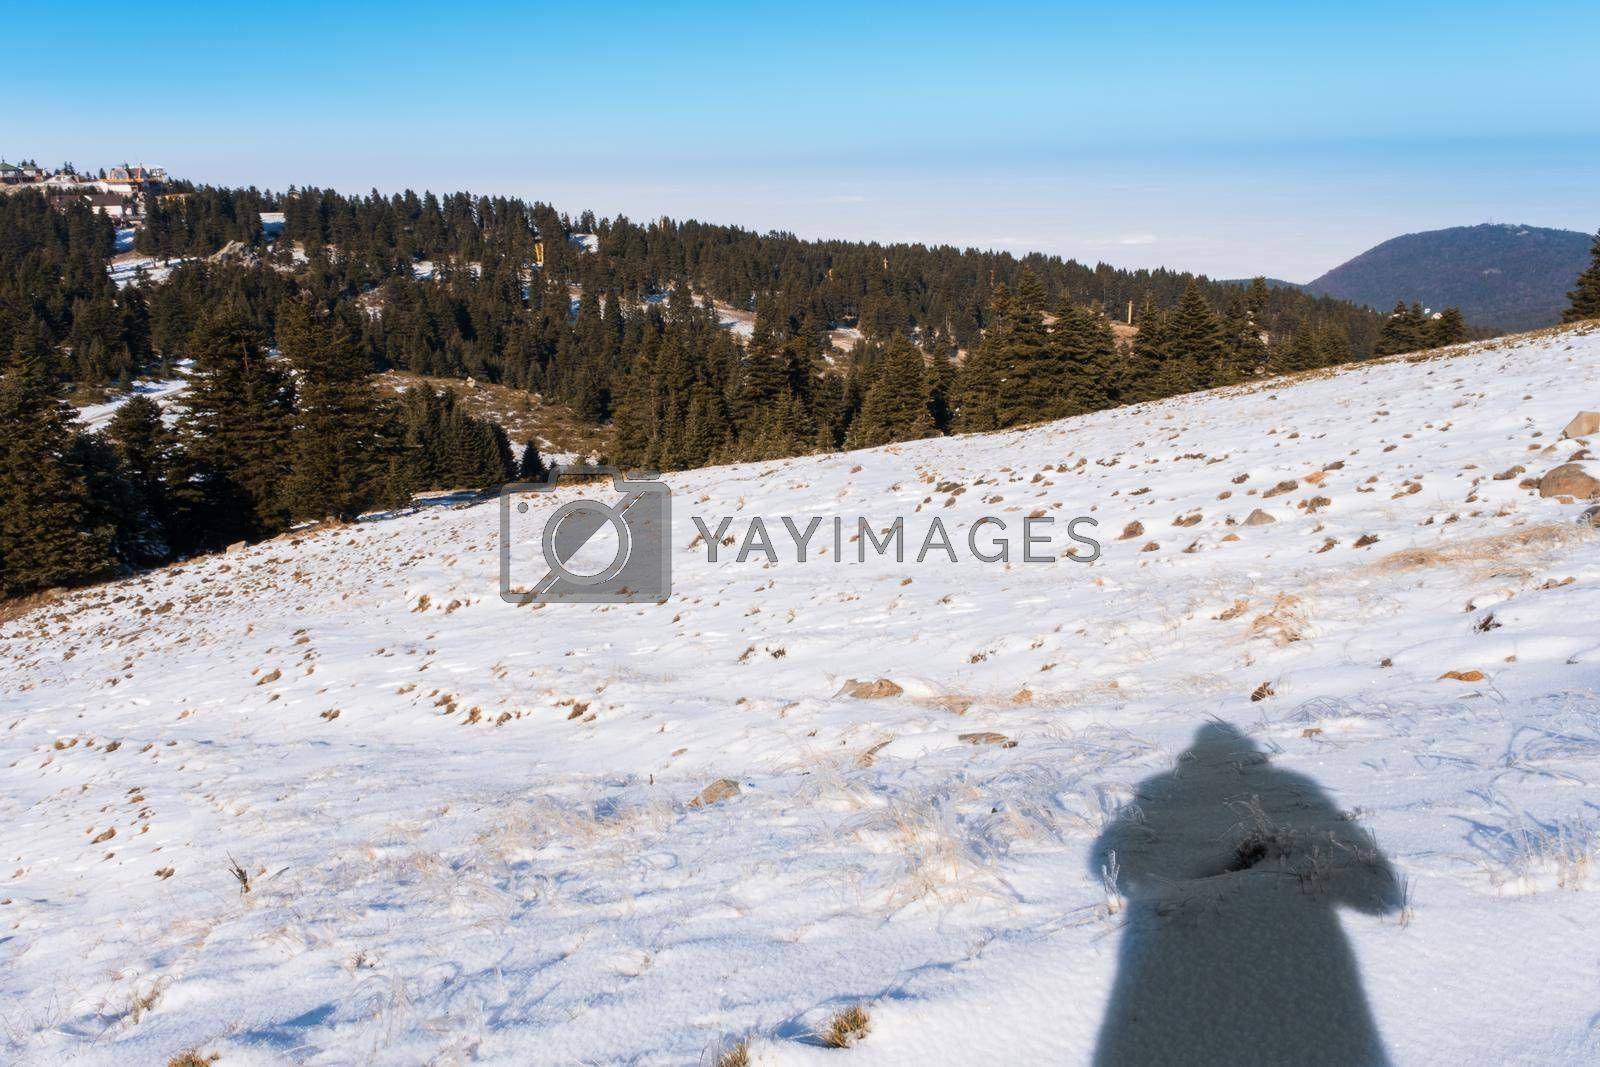 It depicts shadow of a male on snow in winter time